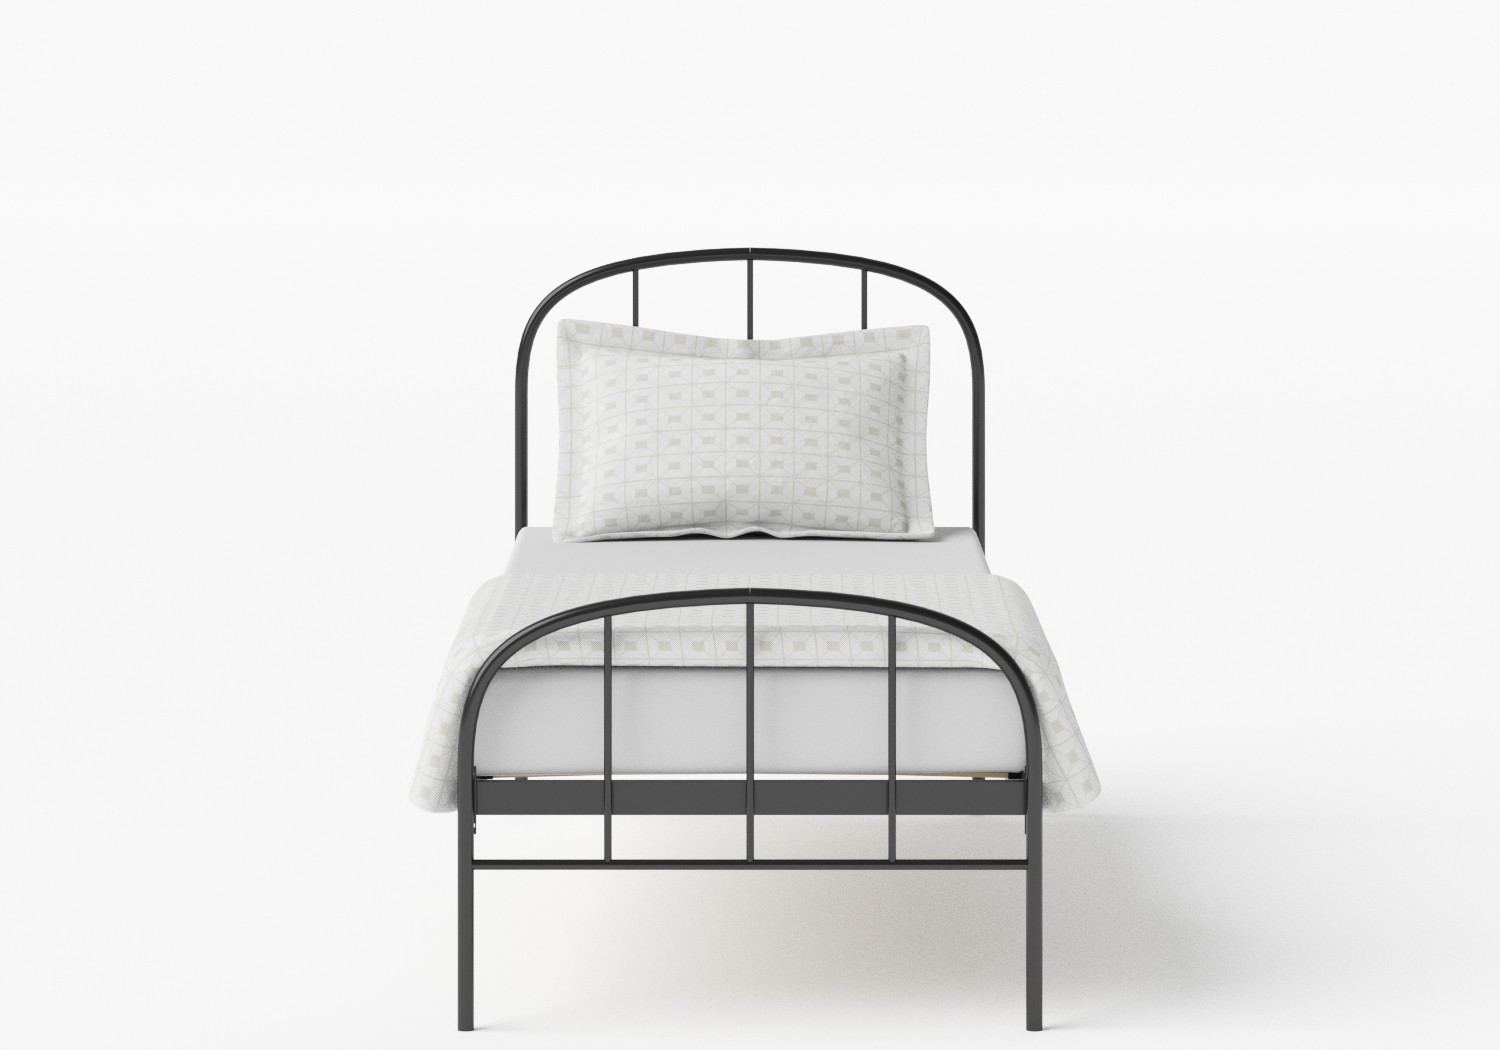 Waldo Single Iron/Metal Bed in Satin Black